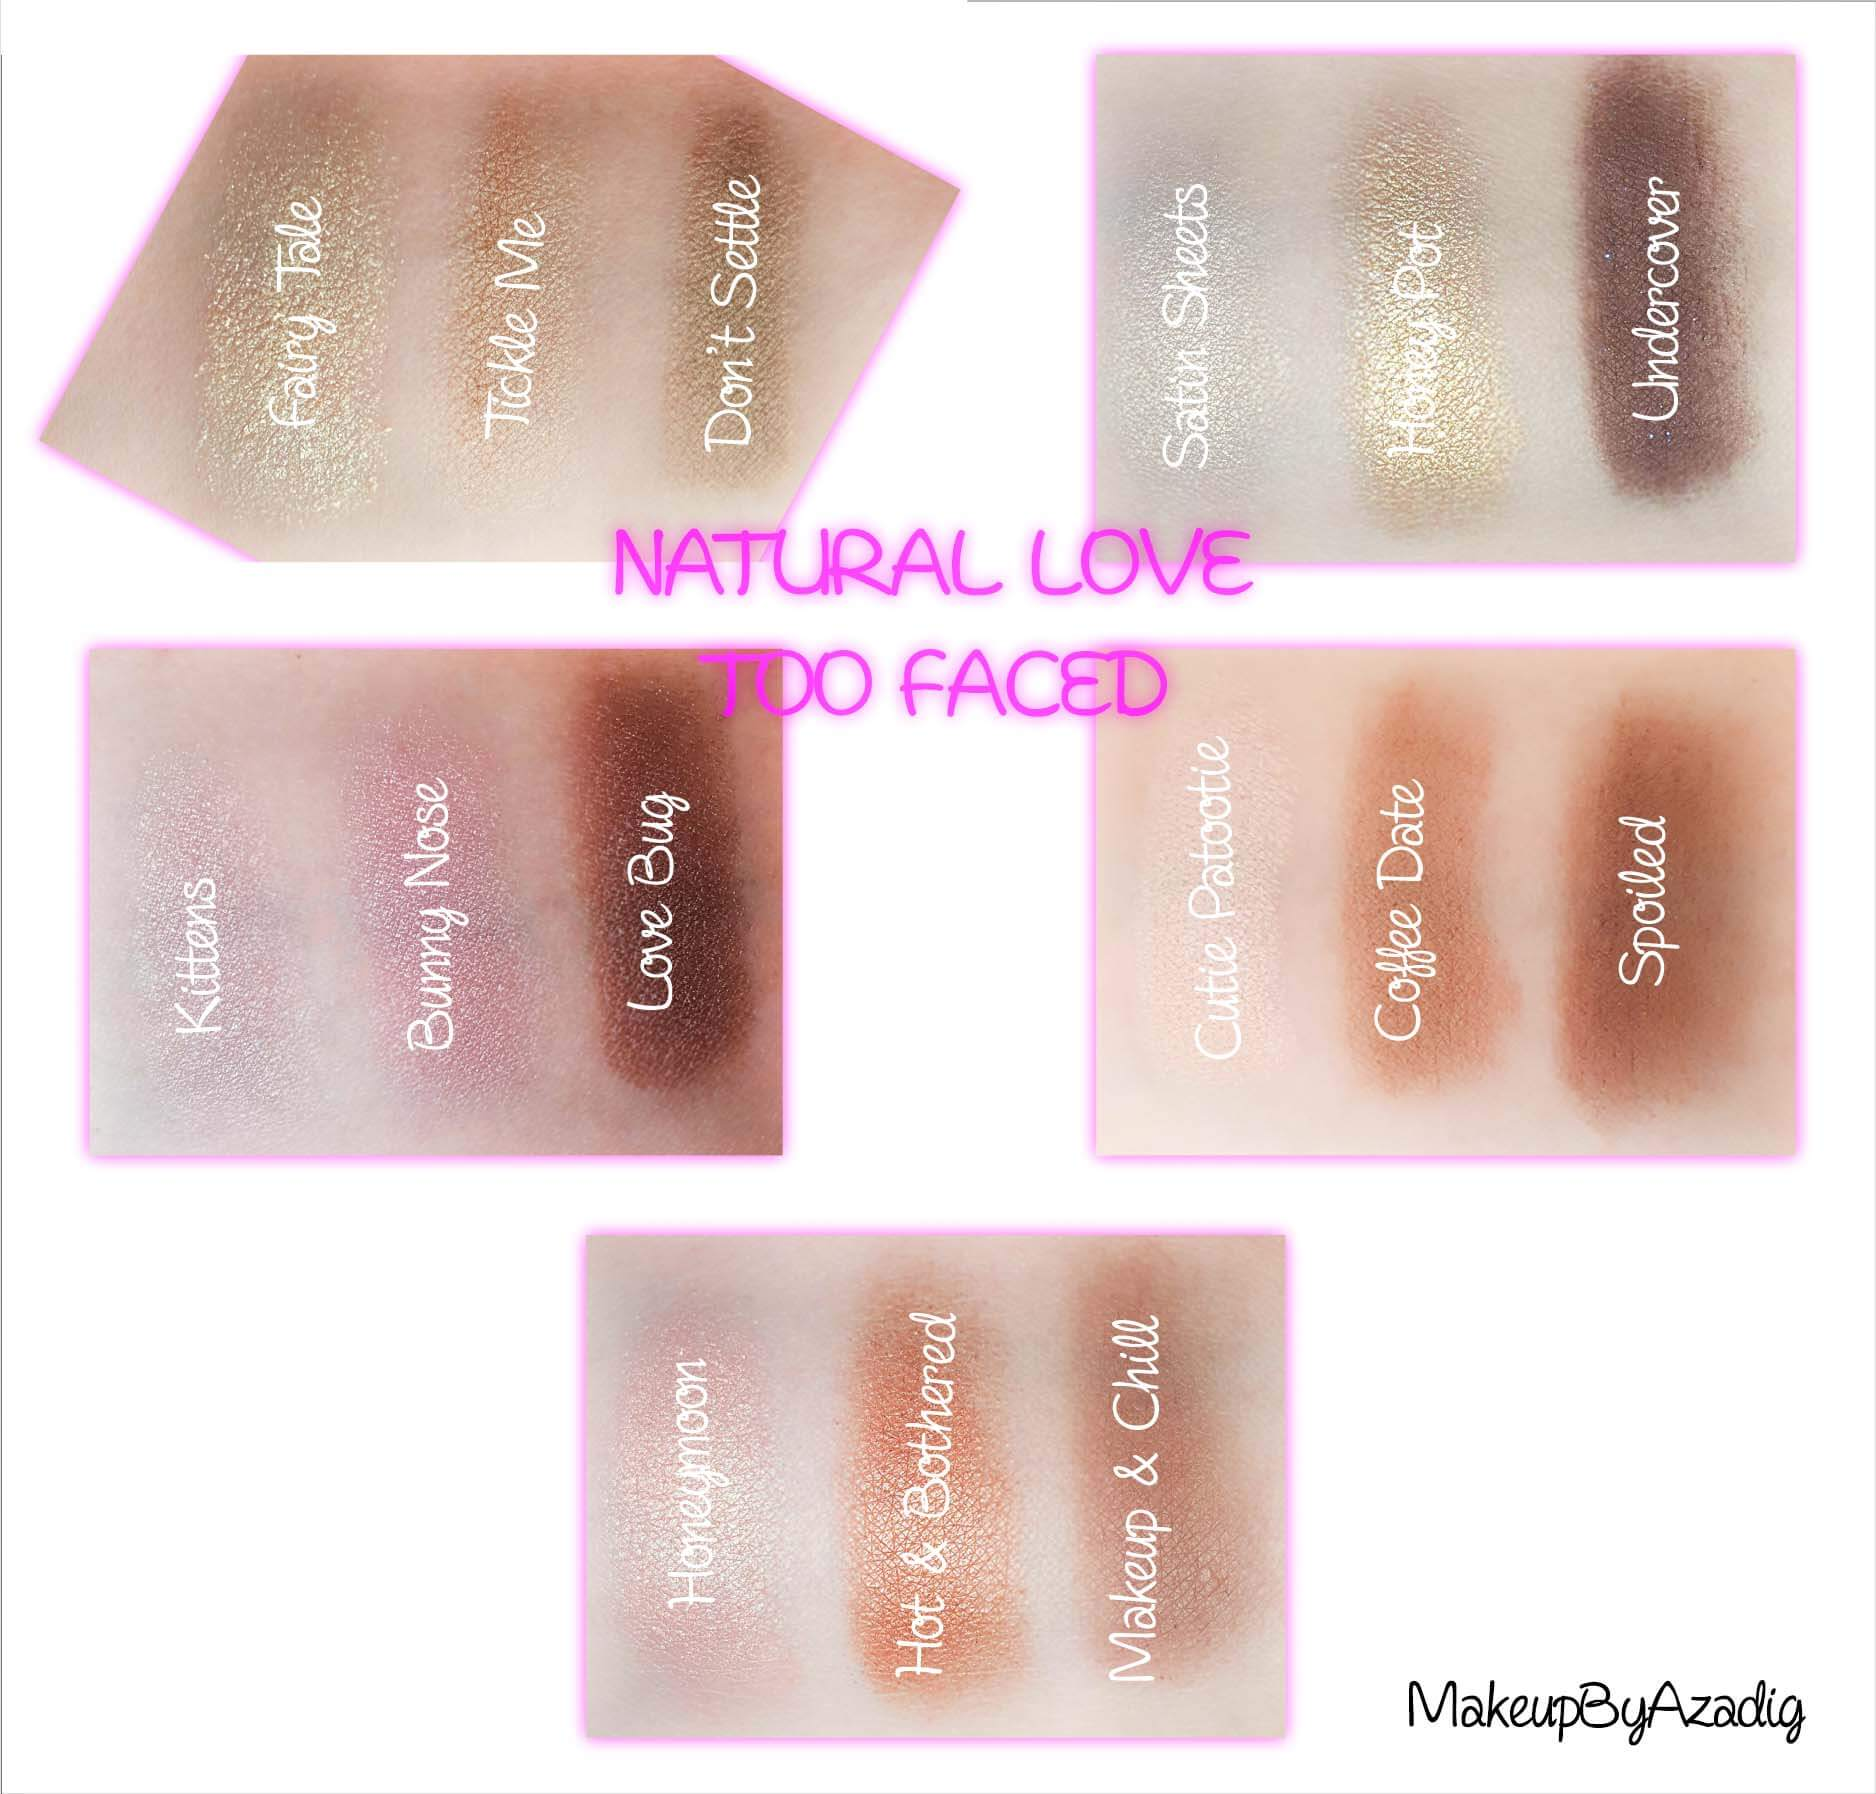 revue-review-palette-natural-love-too-faced-usa-france-disponible-sephora-blog-makeupbyazadig-avis-swatch-prix